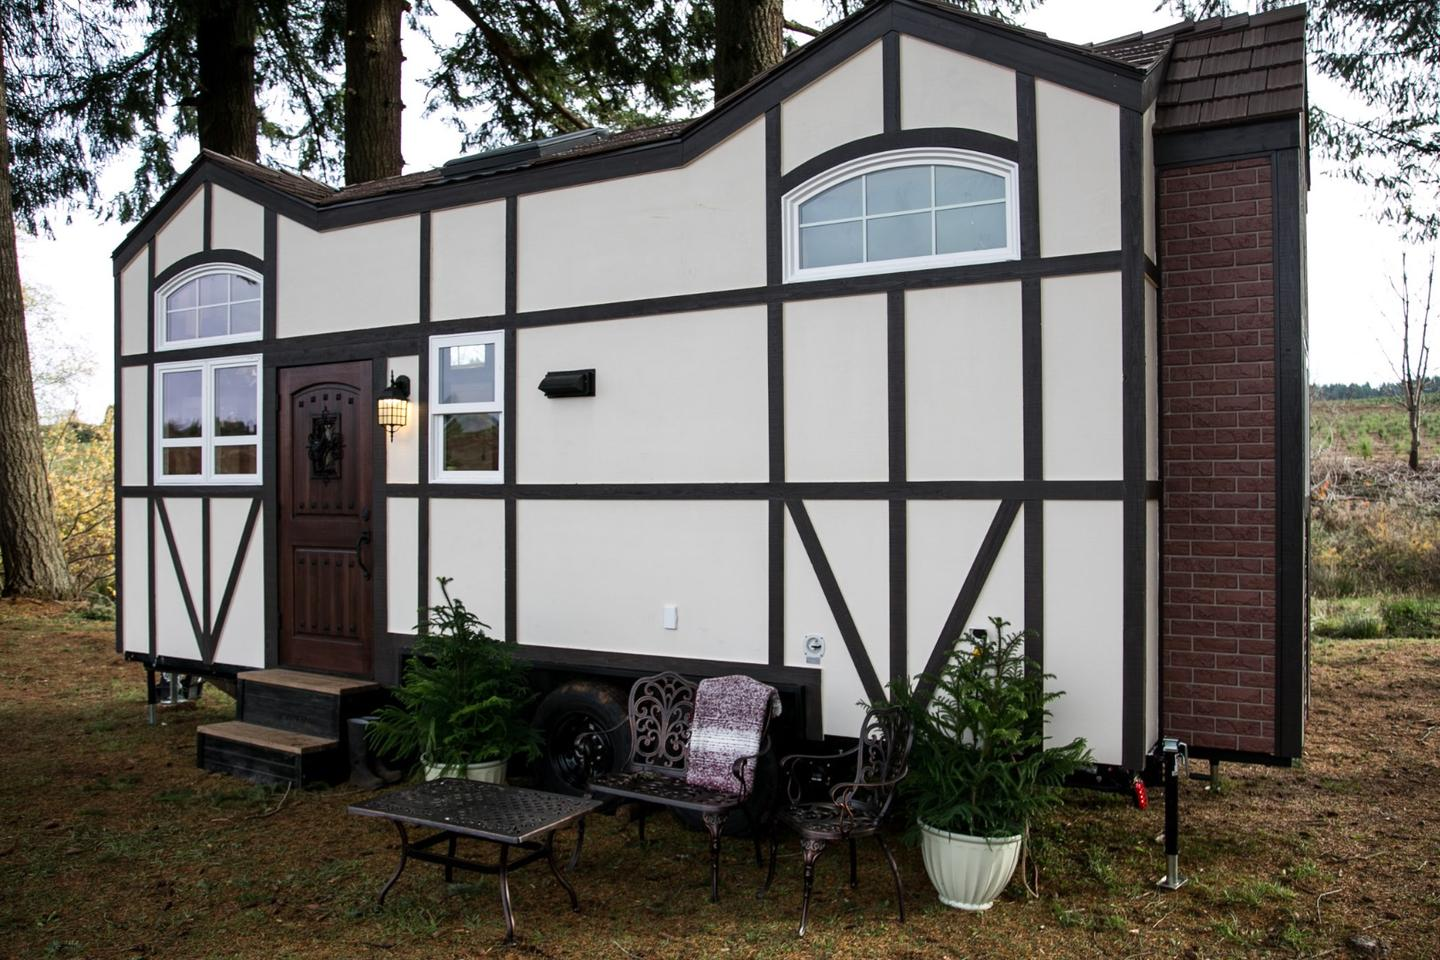 The Tudor-style tiny house measures 24 ft (7.3 m)-long, 8.6 ft (2.6 m)-wide and reaches a maximum height of 13.6 ft (4 m)